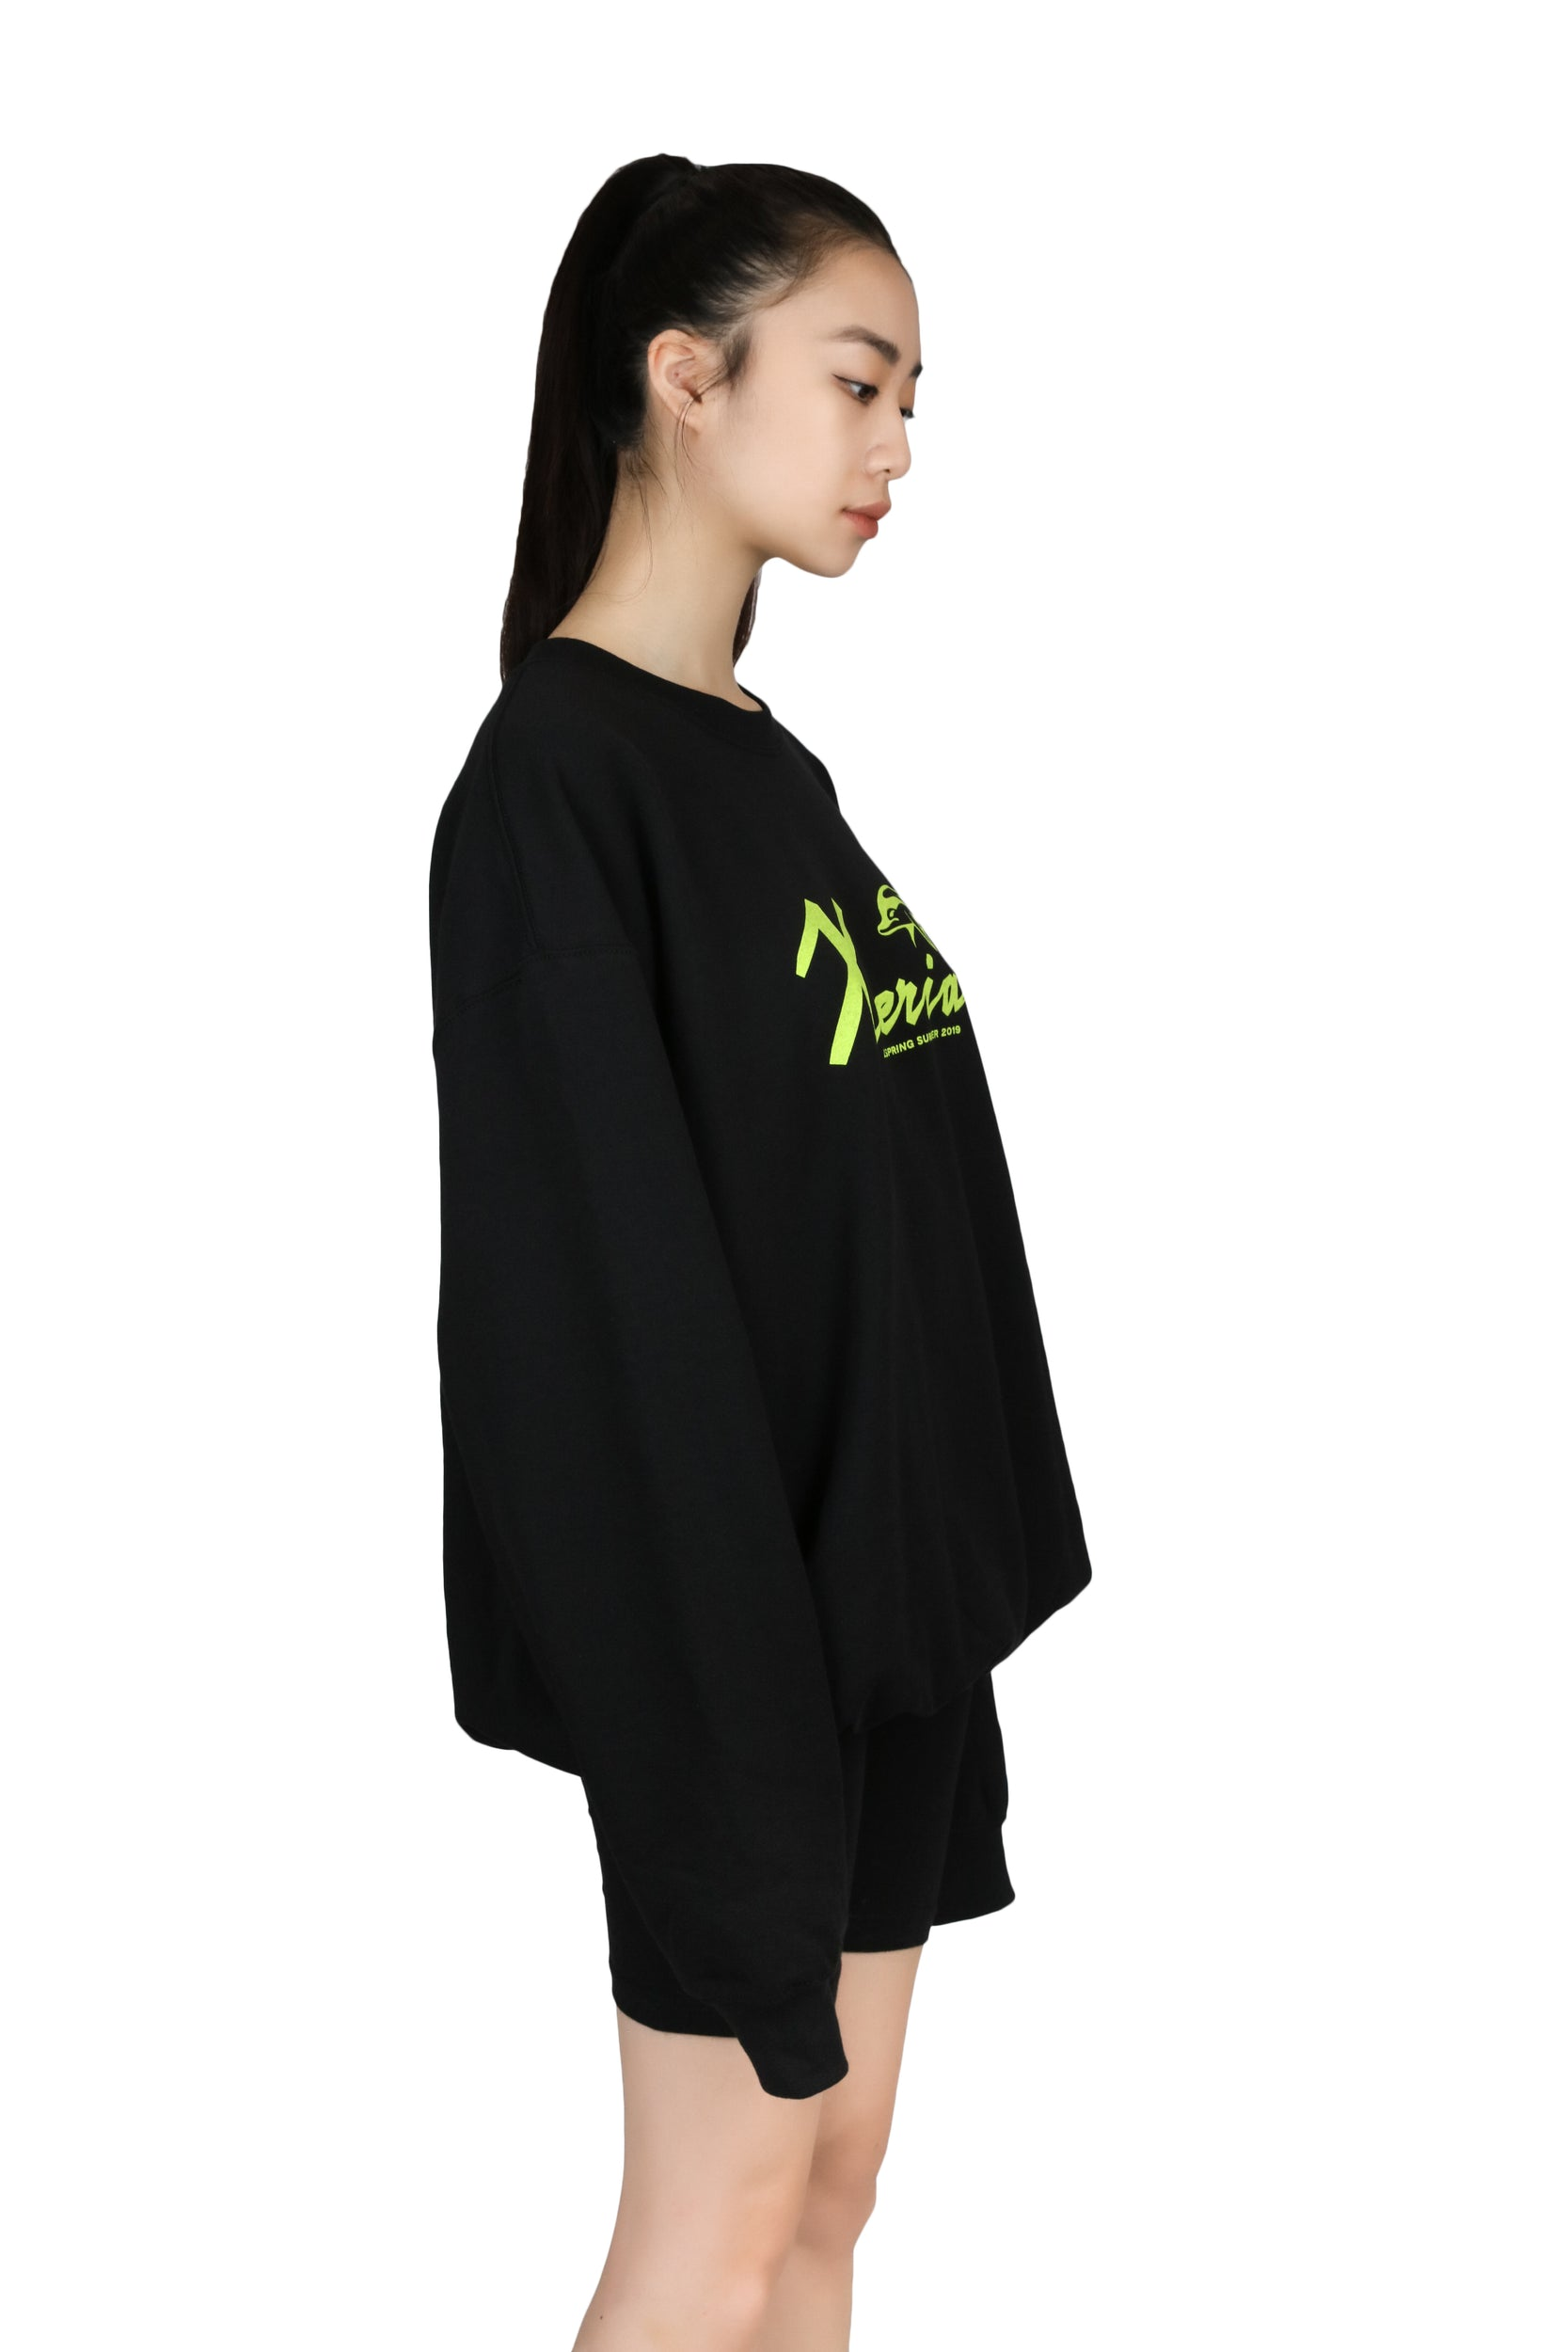 Sweater Xteria (Black/Green) TOP LĒO - NOLM - Clothes Online - nolmau.com - Sydney-Australia Online Shopping